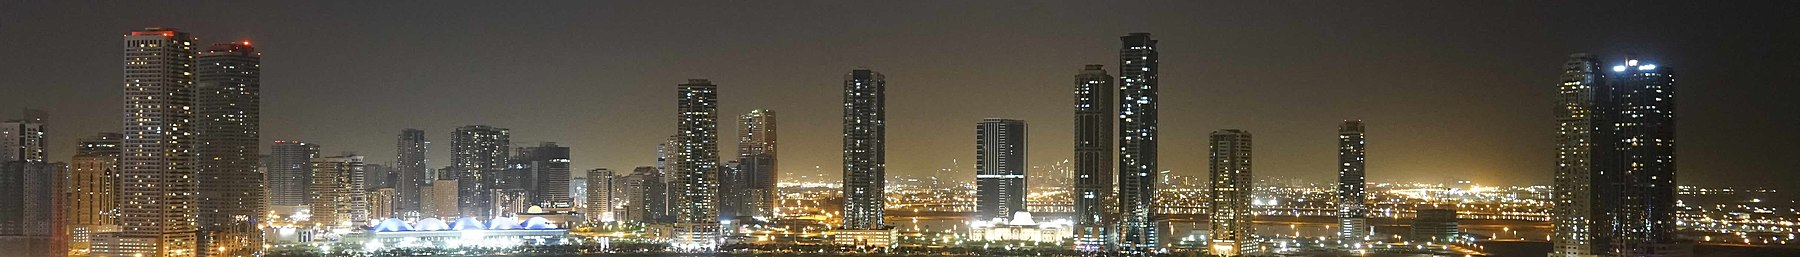 WV banner Sharjah emirate Al Khan lagoon by night.jpg